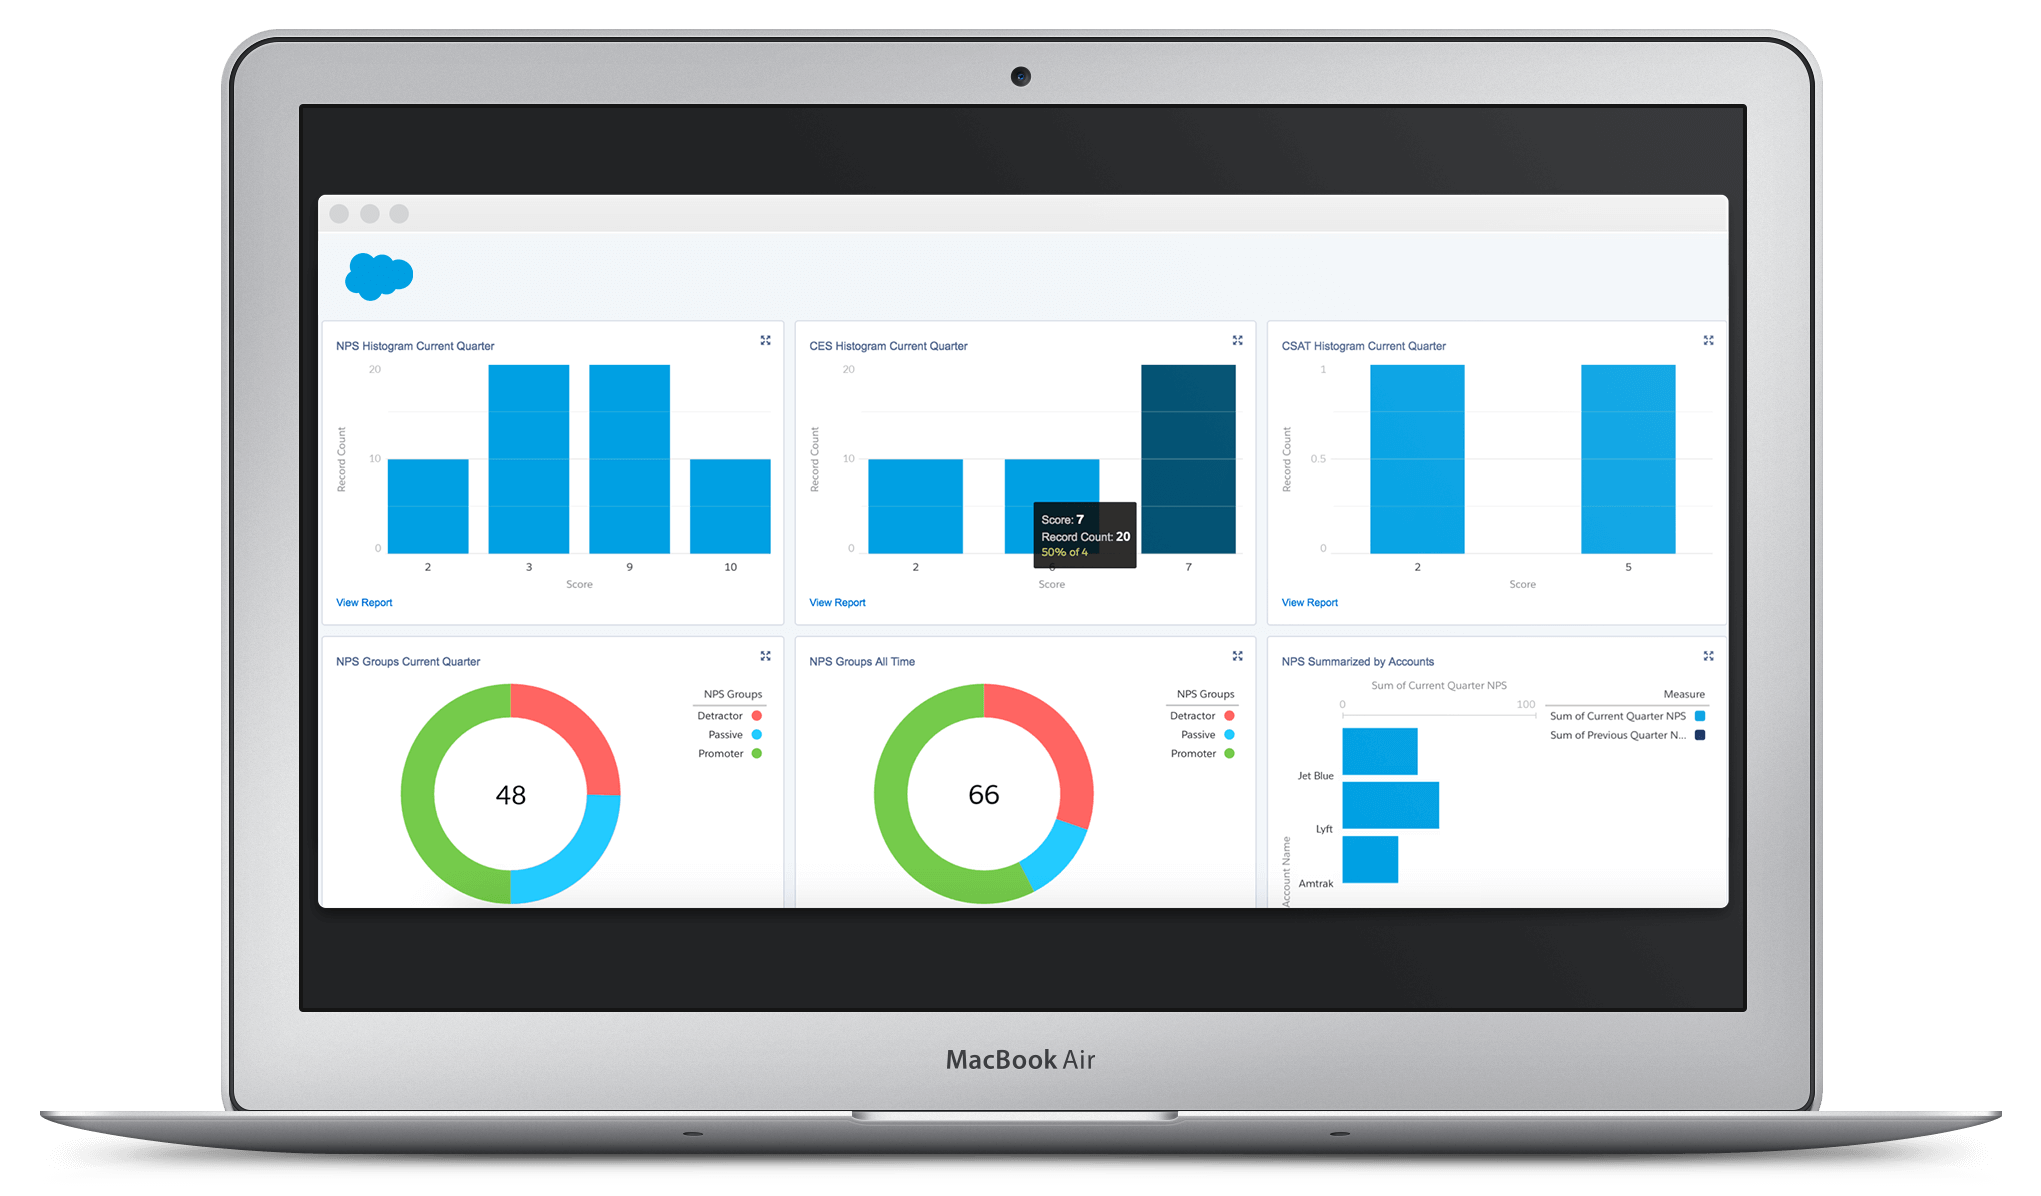 Macbook Air with Wootric NPS Data in SalesForce